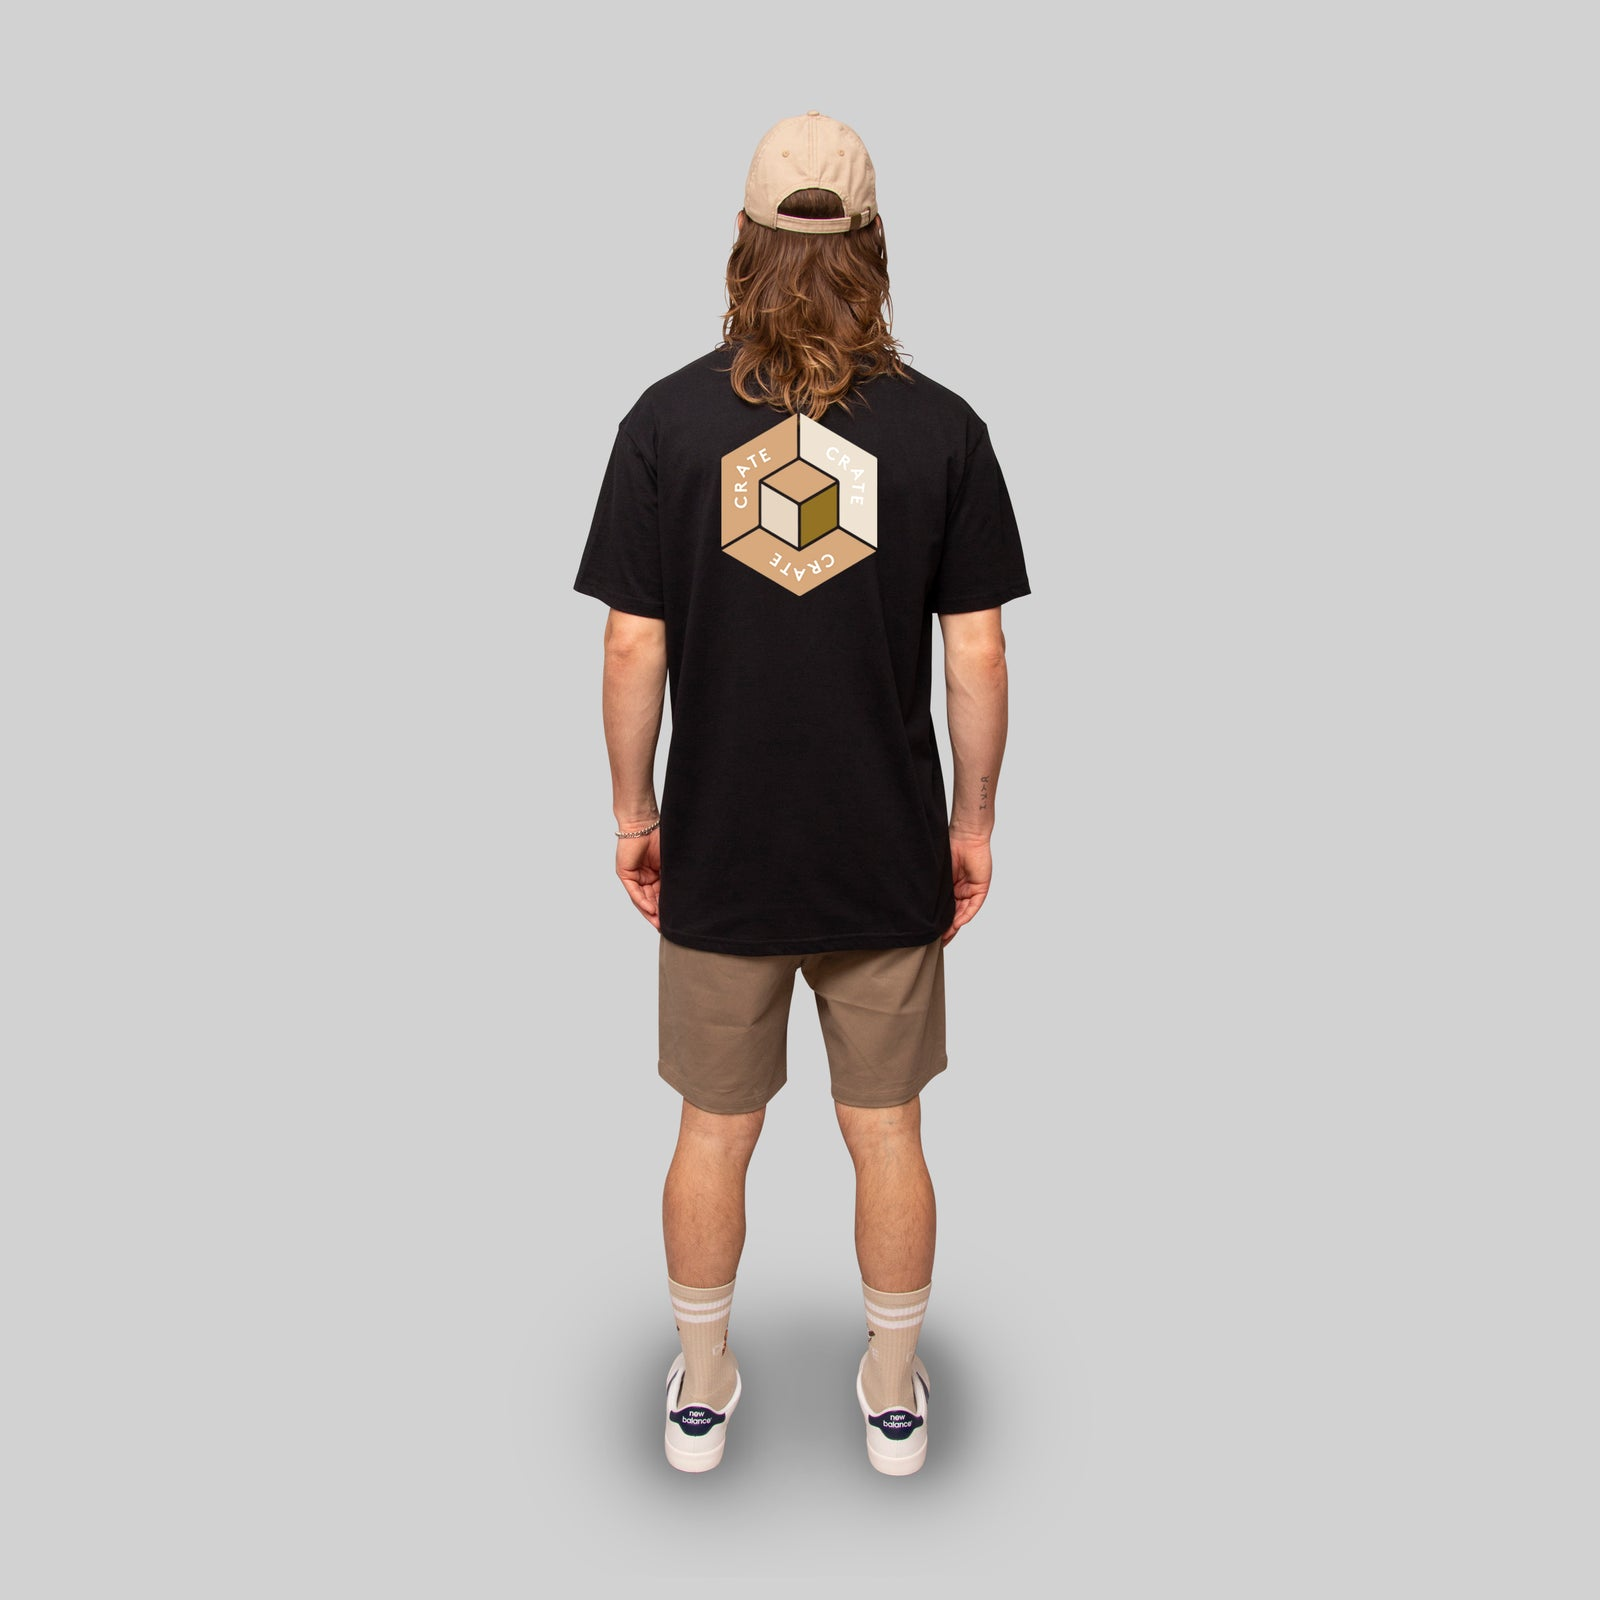 MENS HEX 3D T-SHIRT